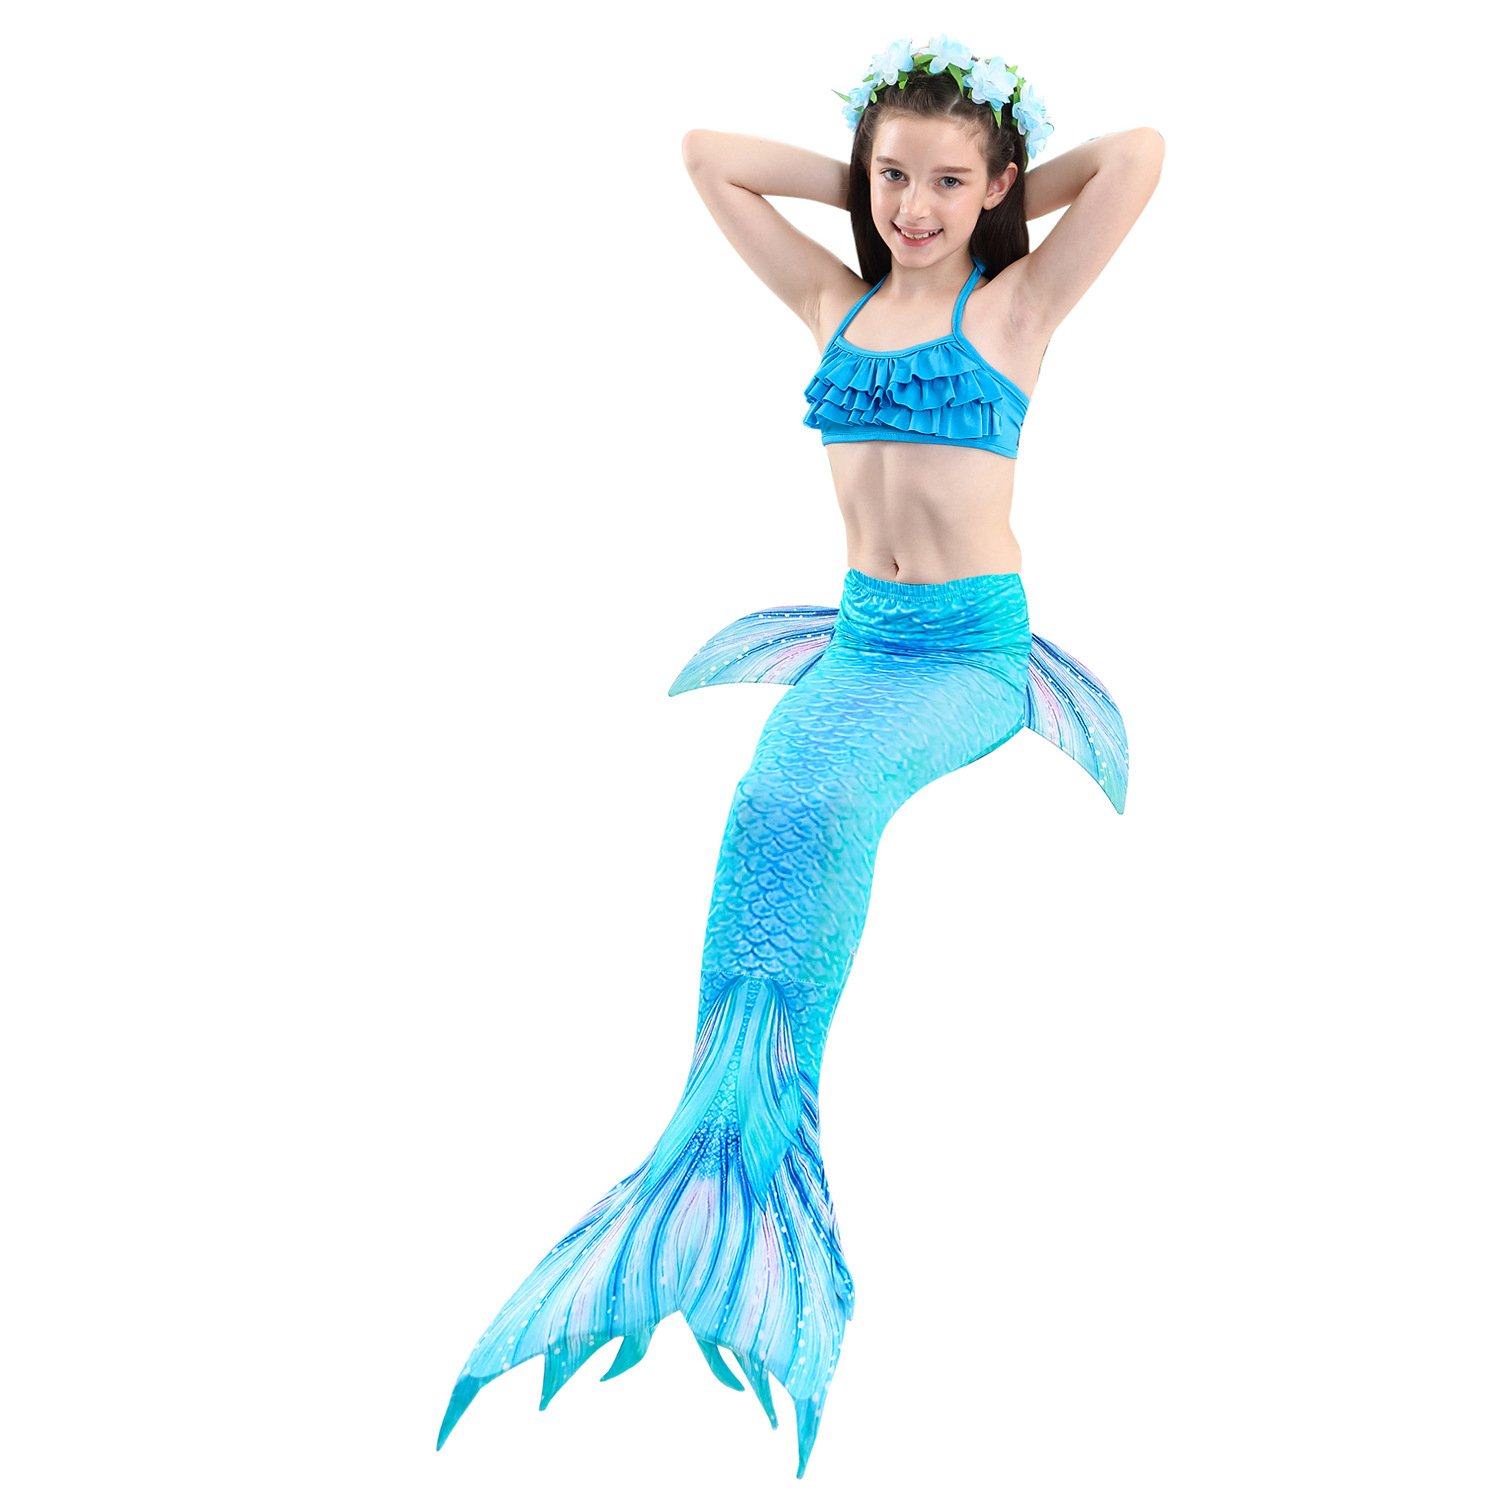 9314611109 898390851 - 4PCS/Set HOT Kids Girls Mermaid Tails with Fin Swimsuit Bikini Bathing Suit Dress for Girls With Flipper Monofin For Swim